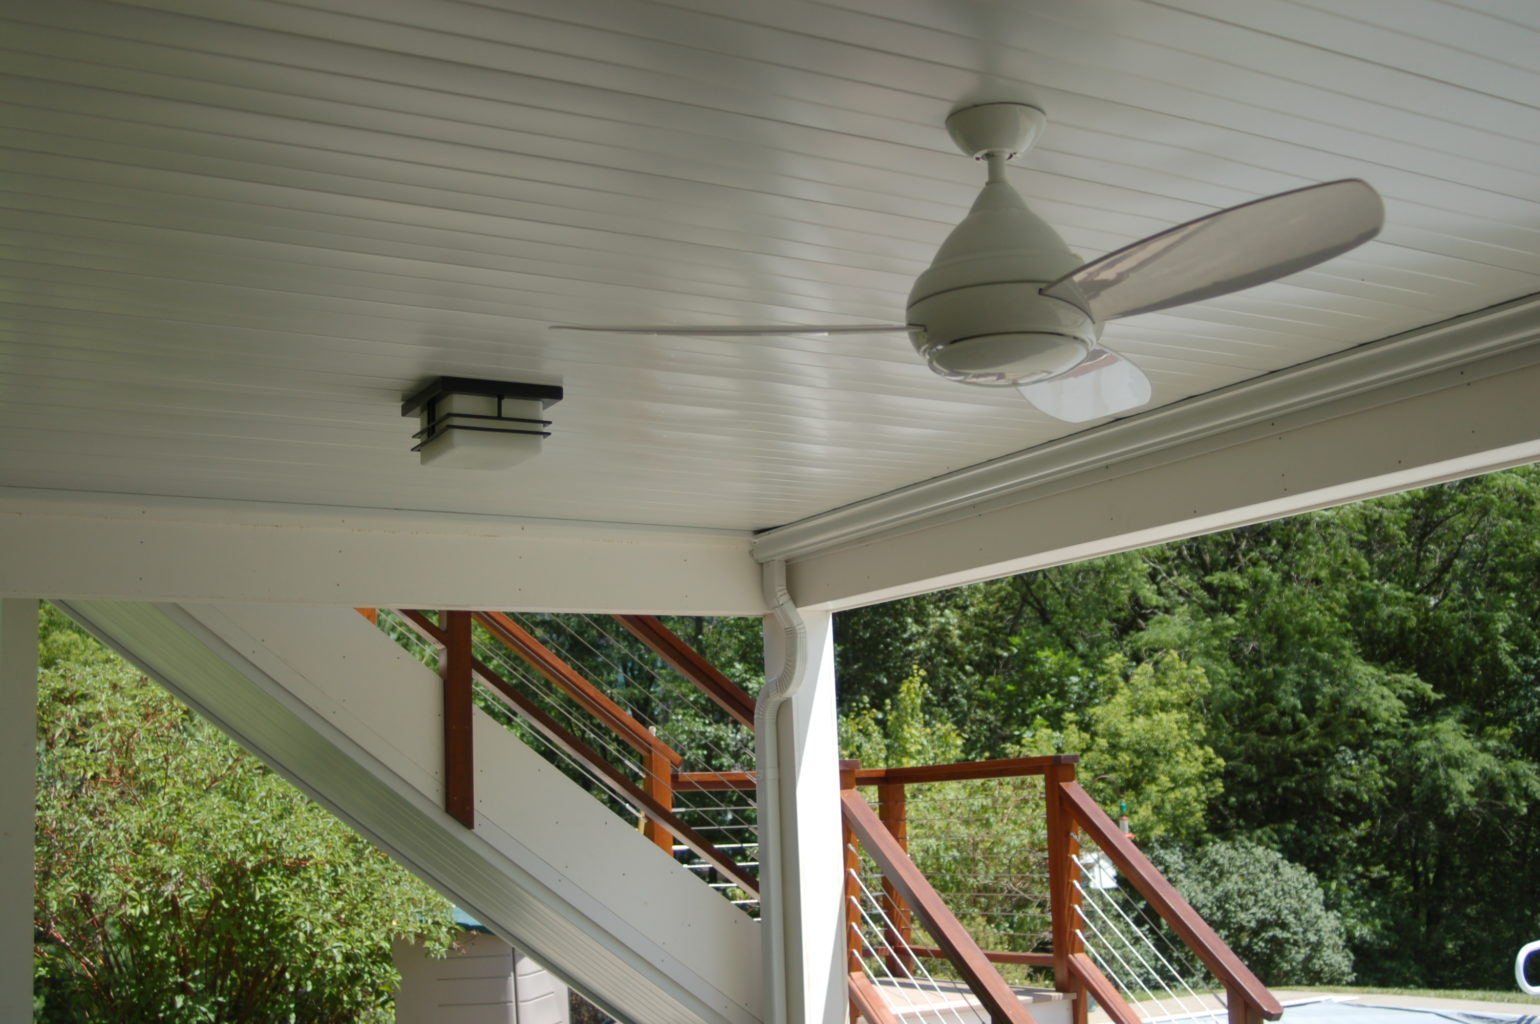 Underdeck ceiling with light and fan